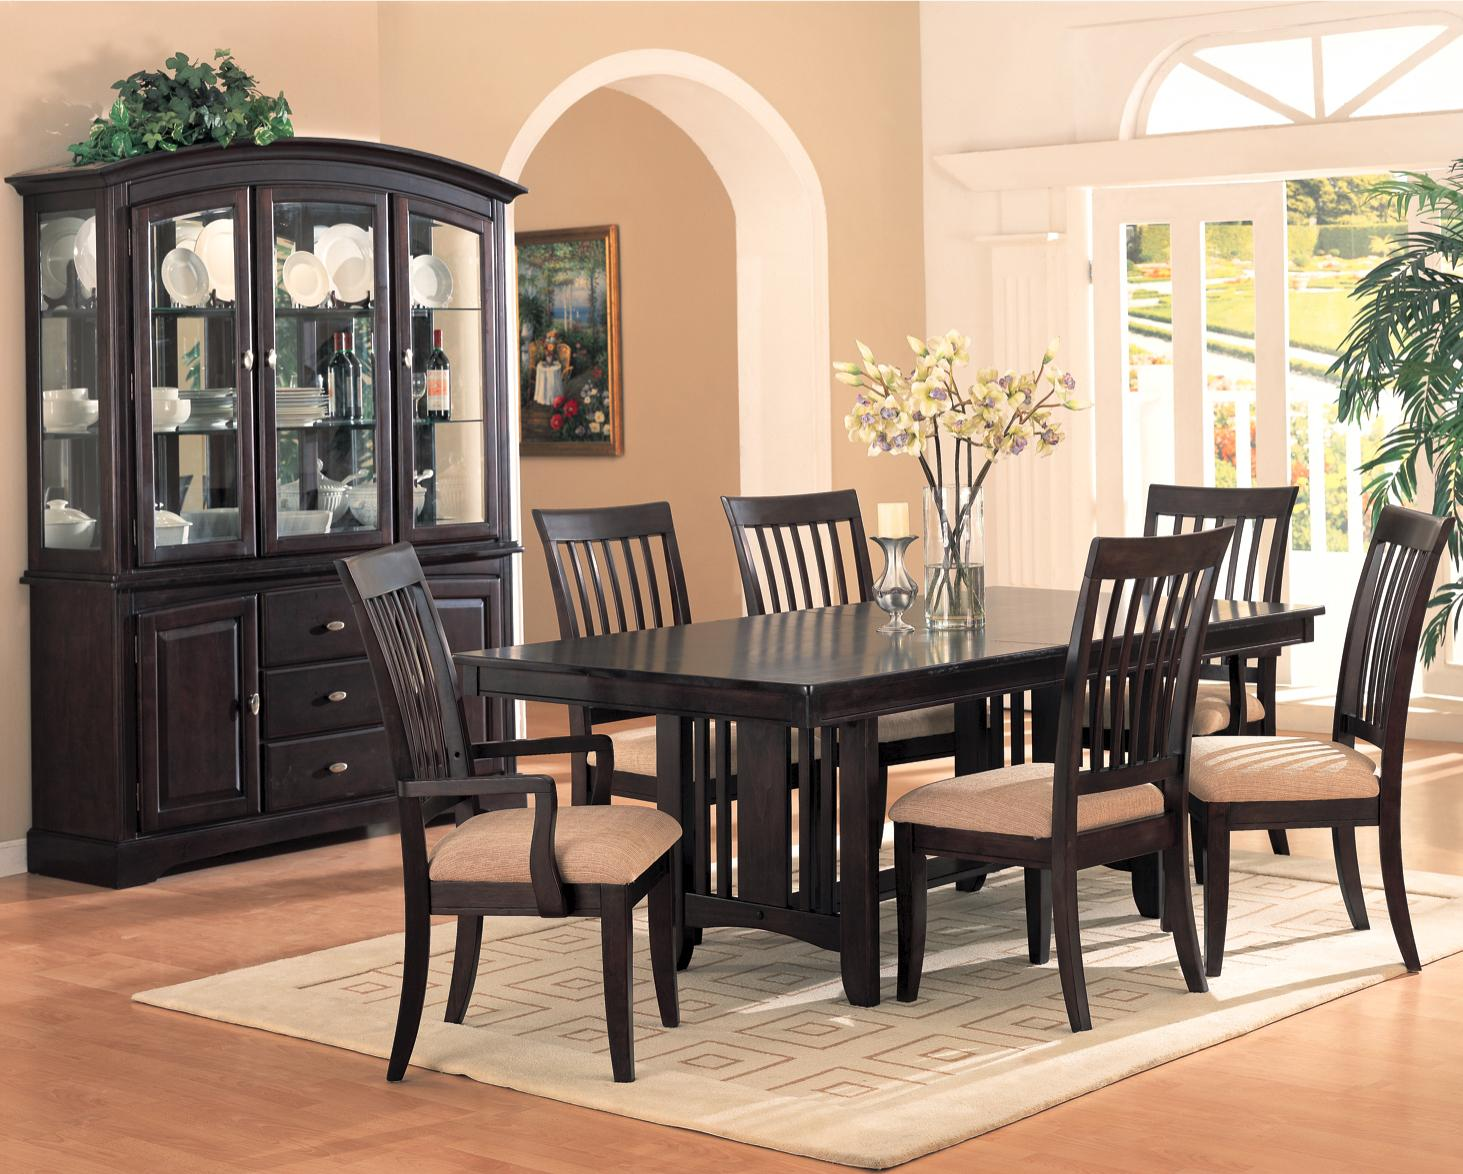 dining room best deal discount dining room table sets 2017 ideas ZGUBPHC